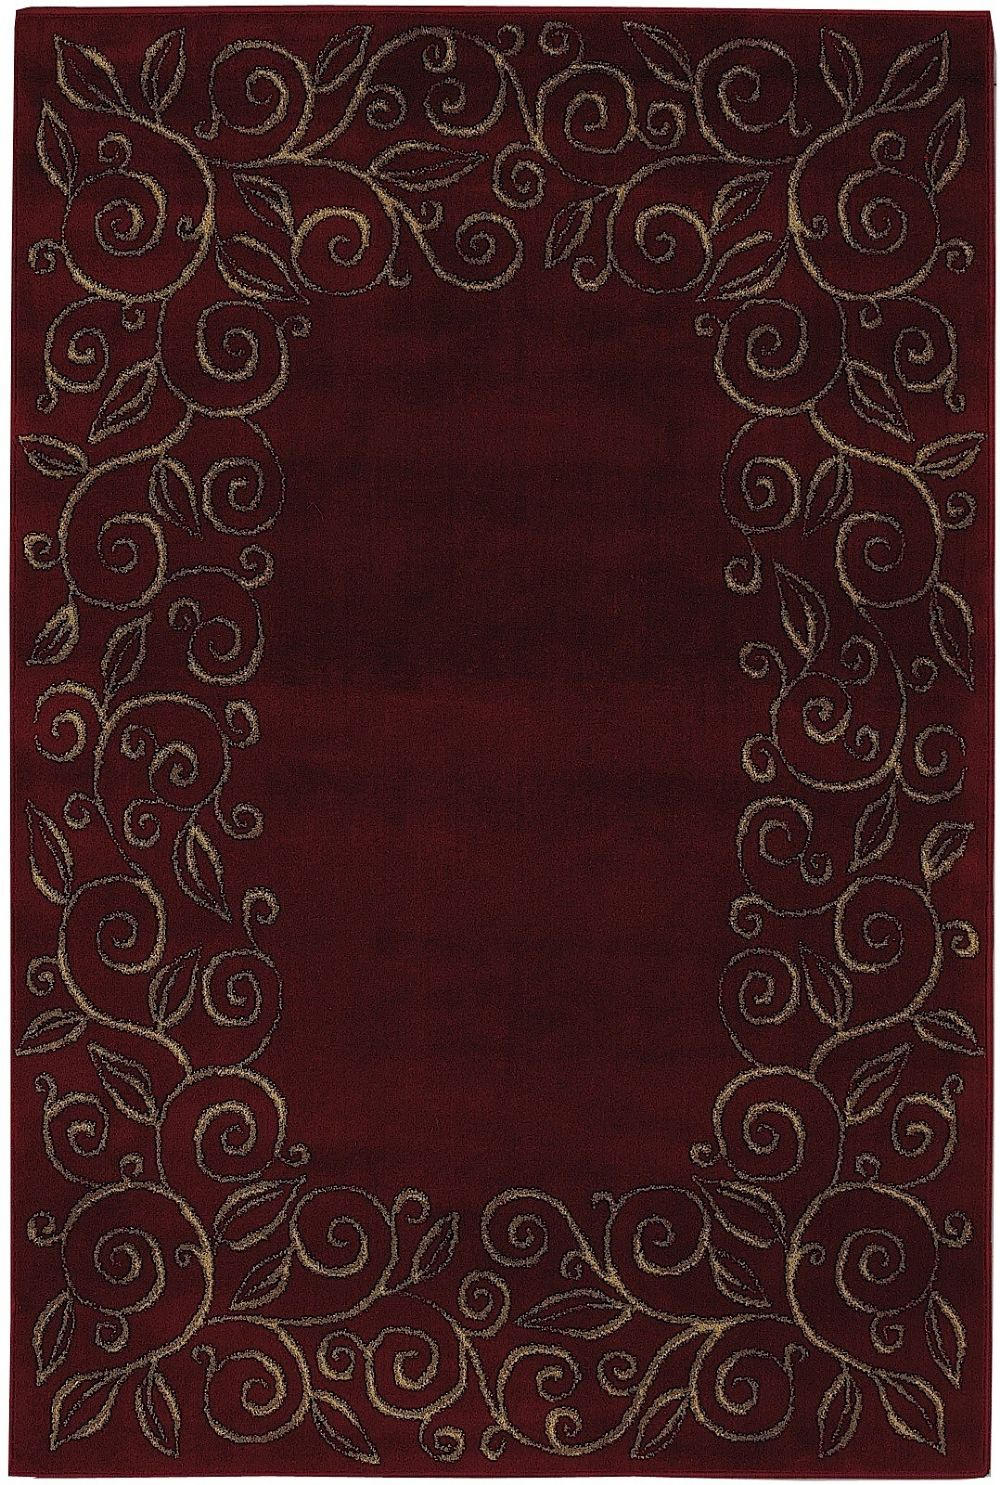 shaw accents transitional area rug collection